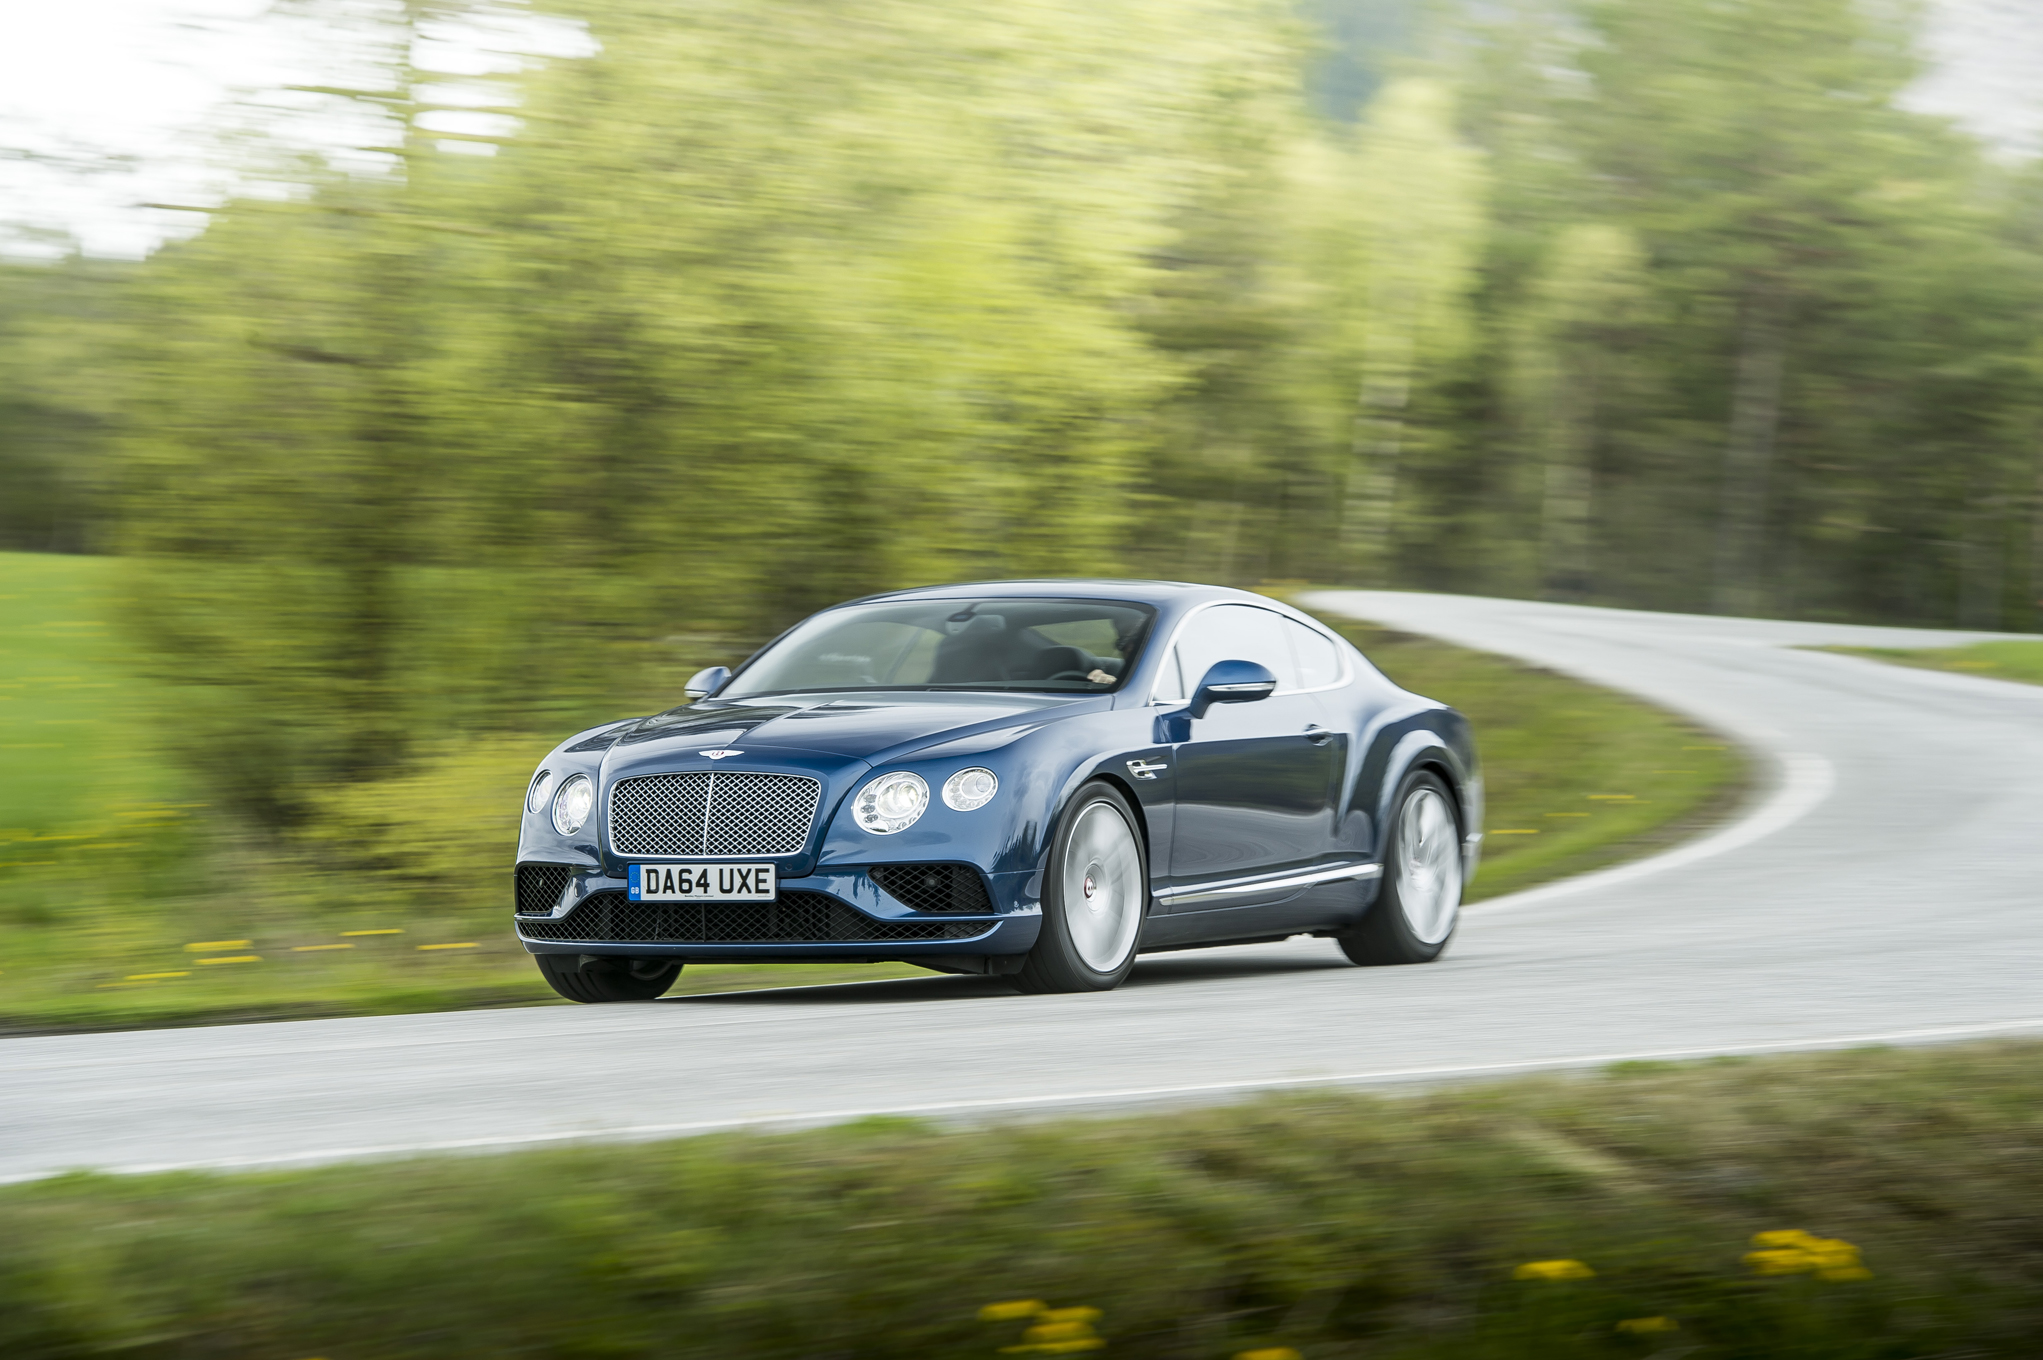 2019 Bentley Continental GT Prototype photo - 2